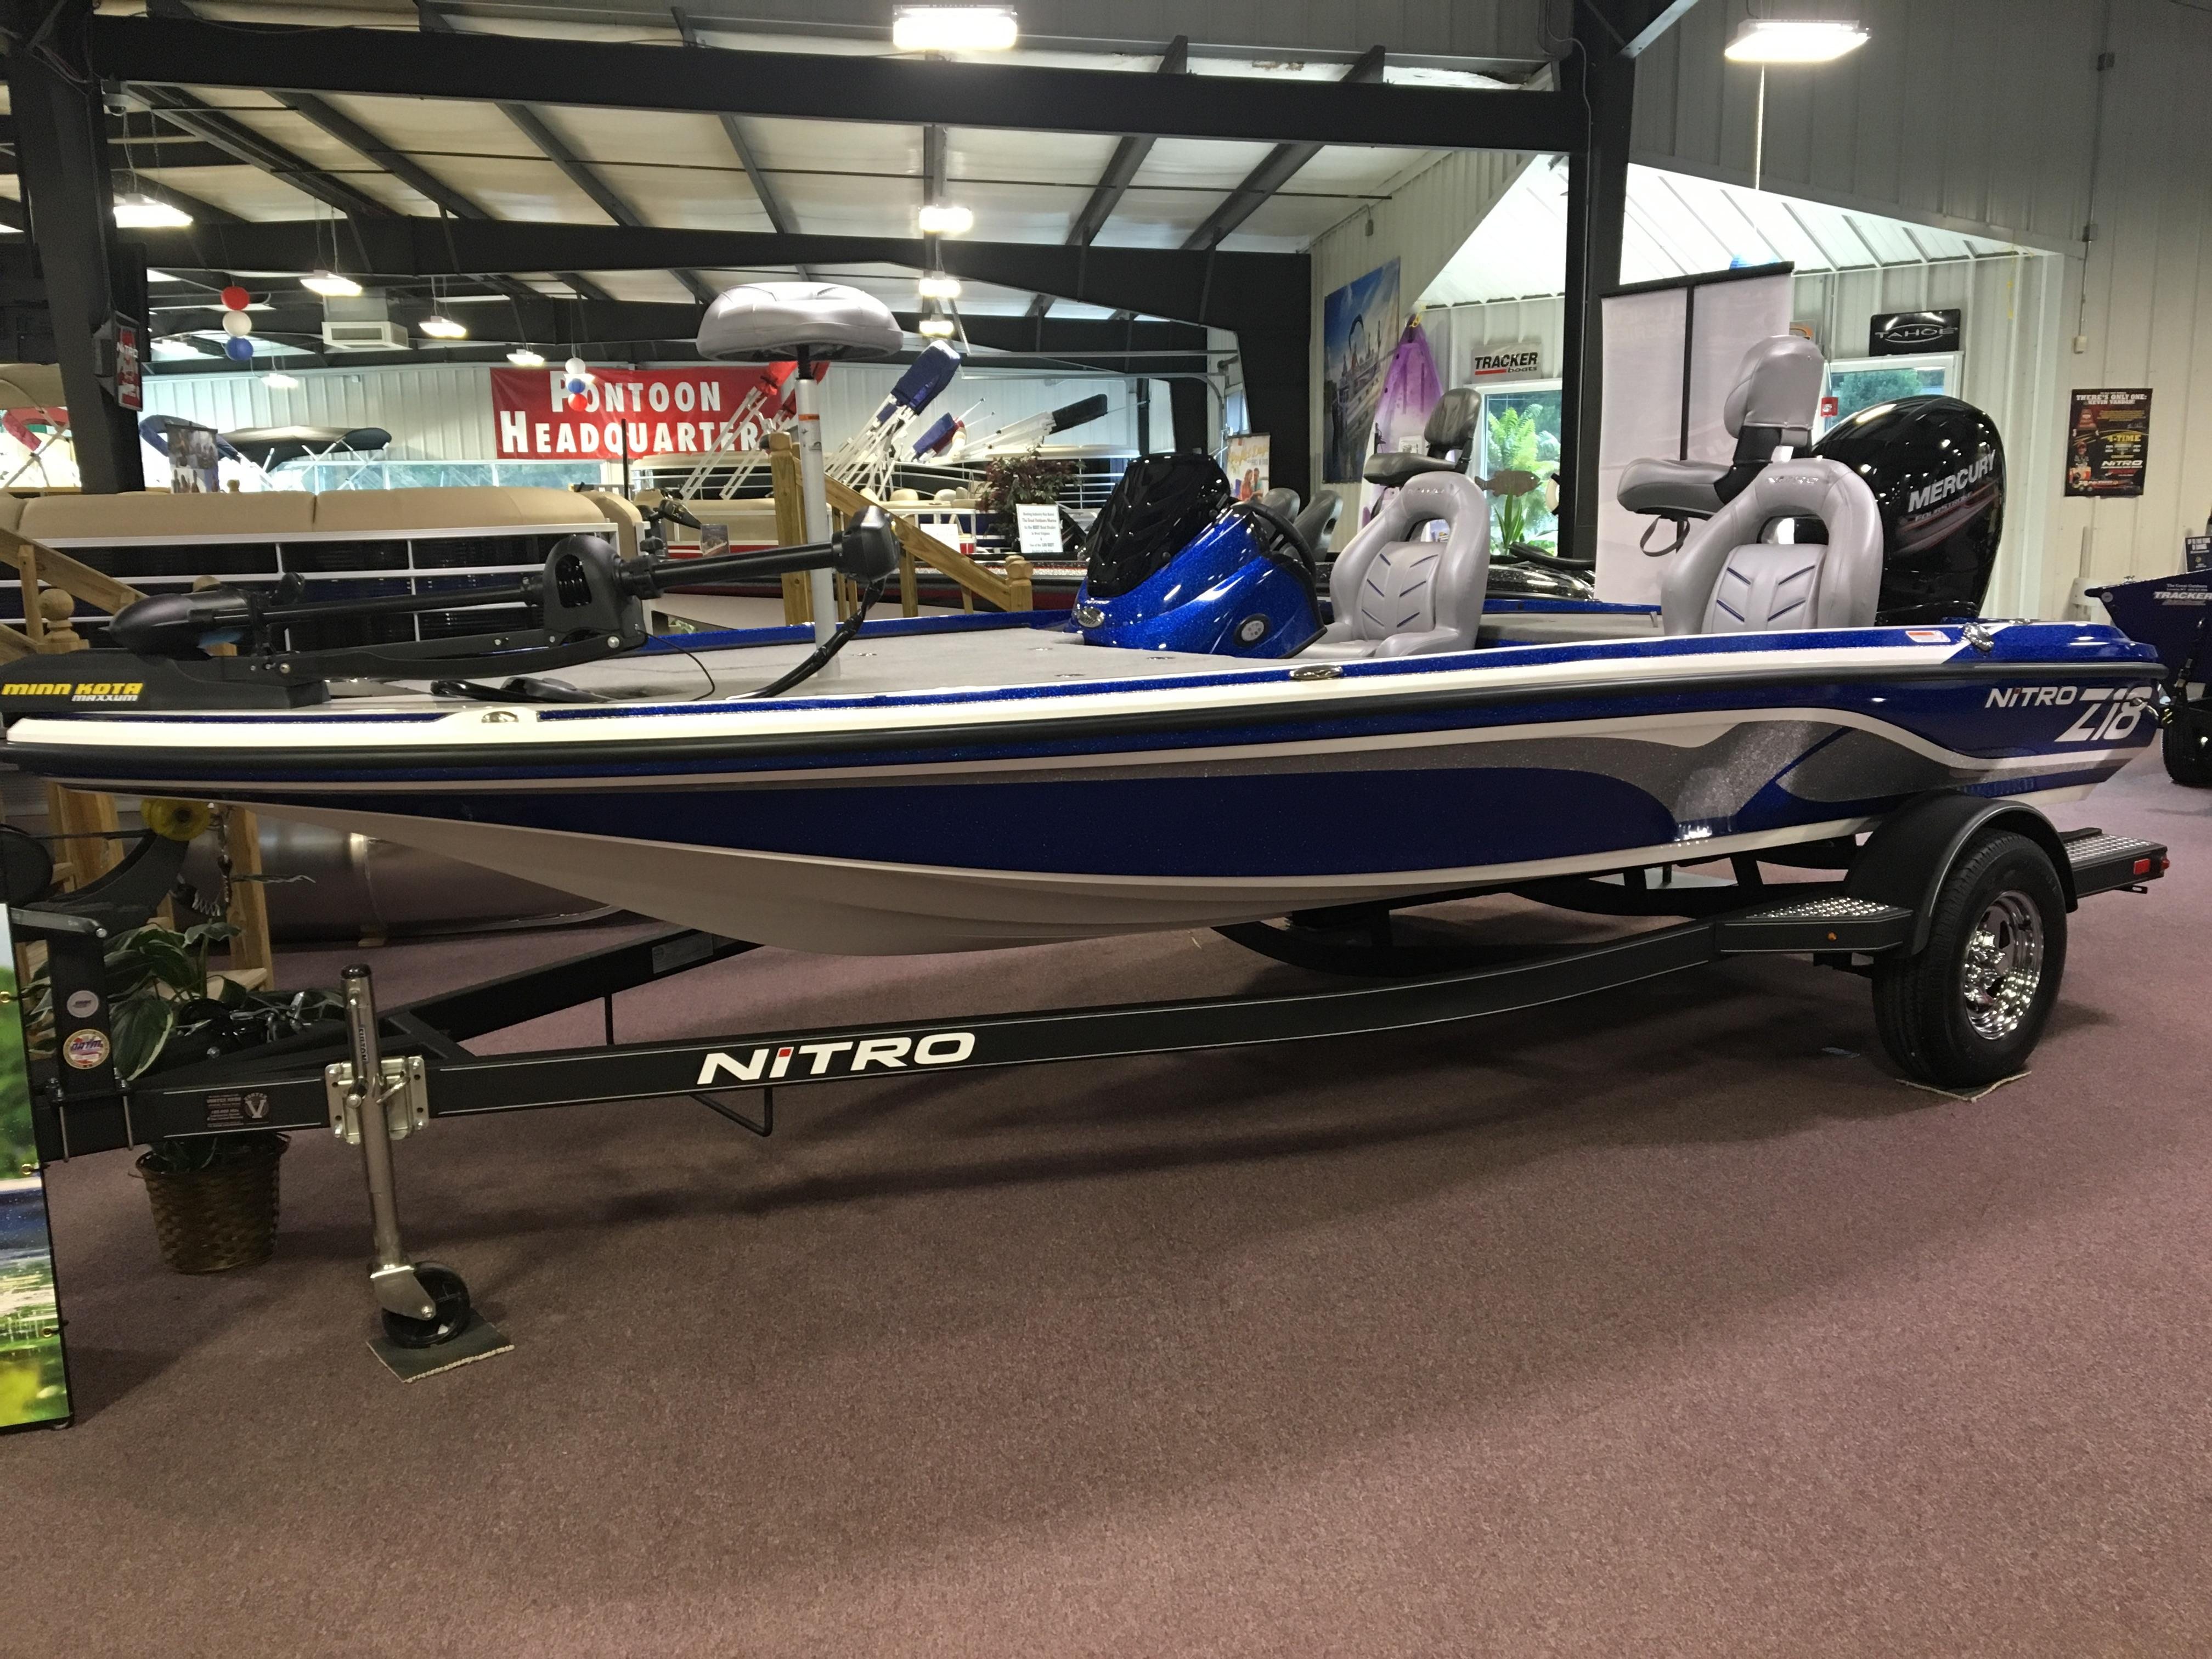 Boats For Sale In Wv >> Nitro Bass Fishing Boats for Sale   The Great Outdoors Marine in WV